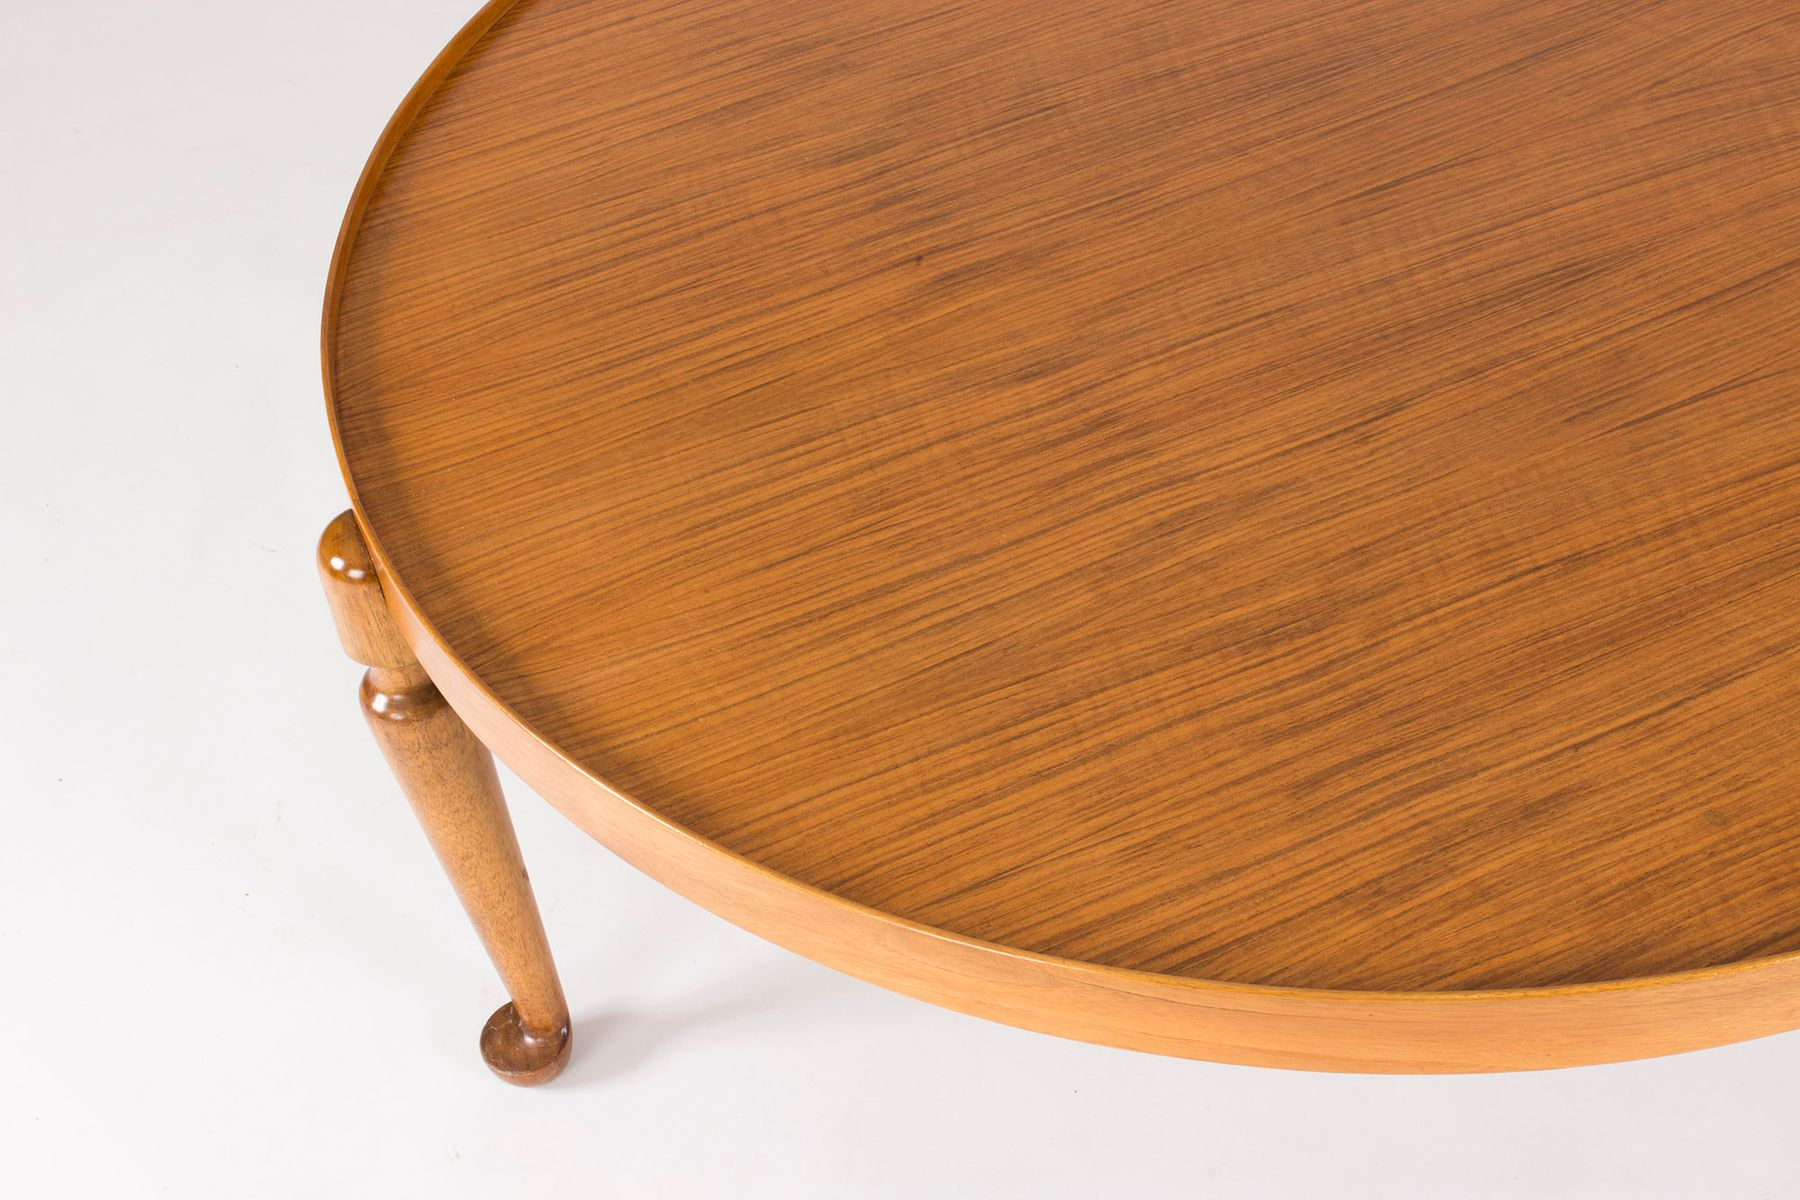 Round Mid Century Coffee Table Mid Century Swedish Round Walnut Coffee Table By Josef